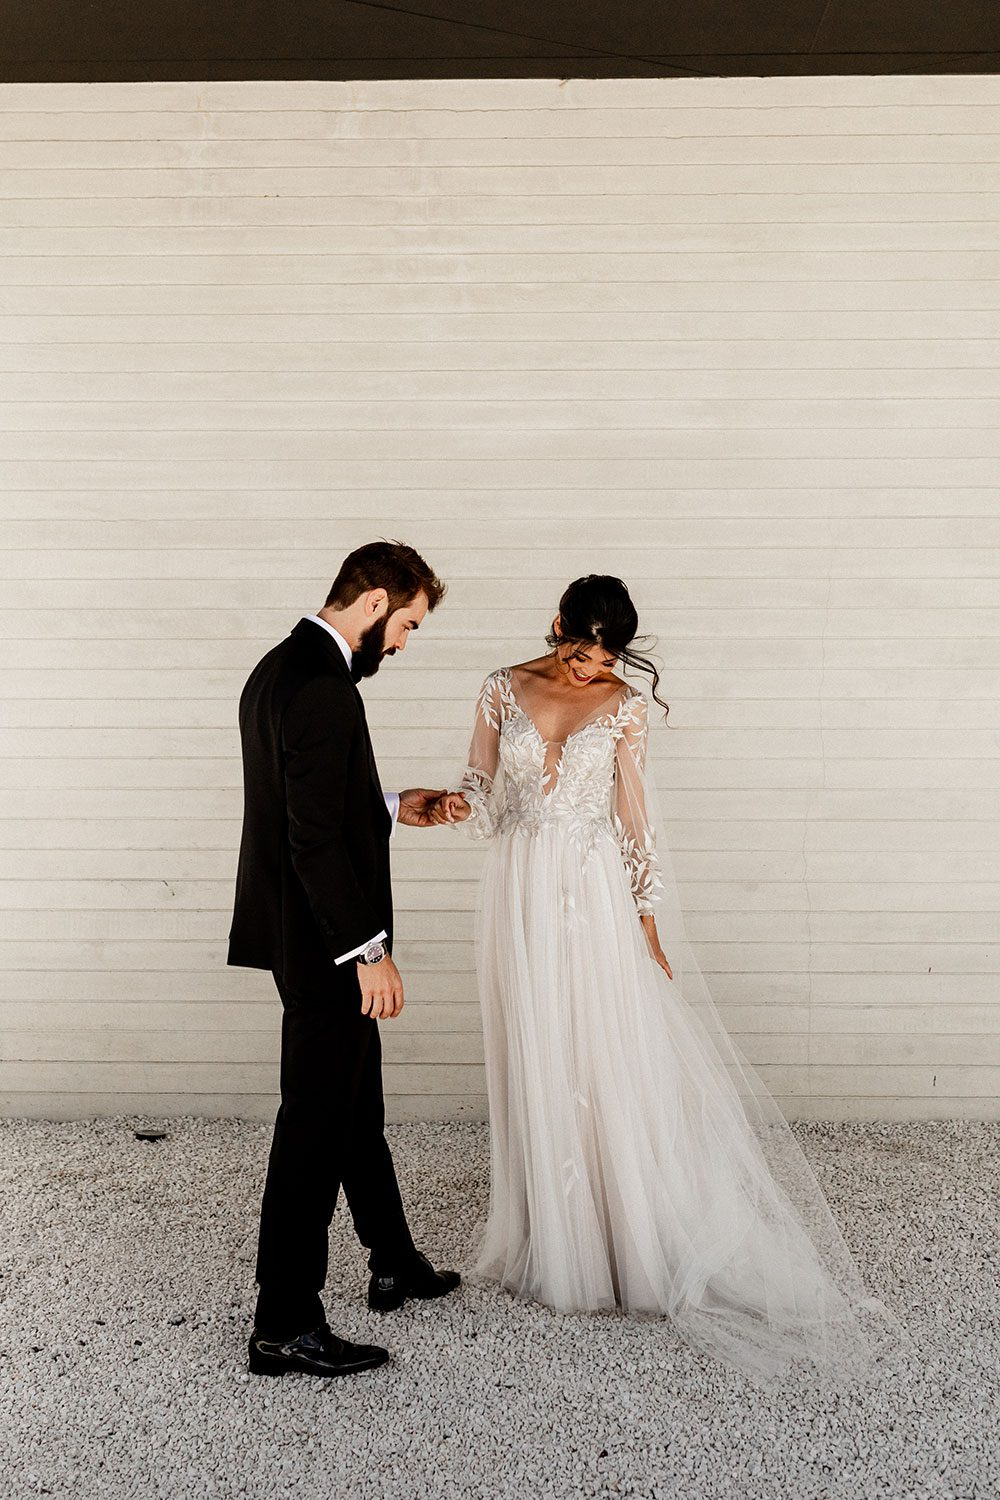 Bride wearing bespoke designer wedding dress by Vinka Bridal Boutique NZ, adorned with delicate applique lace and puffed sleeves - with groom near wall